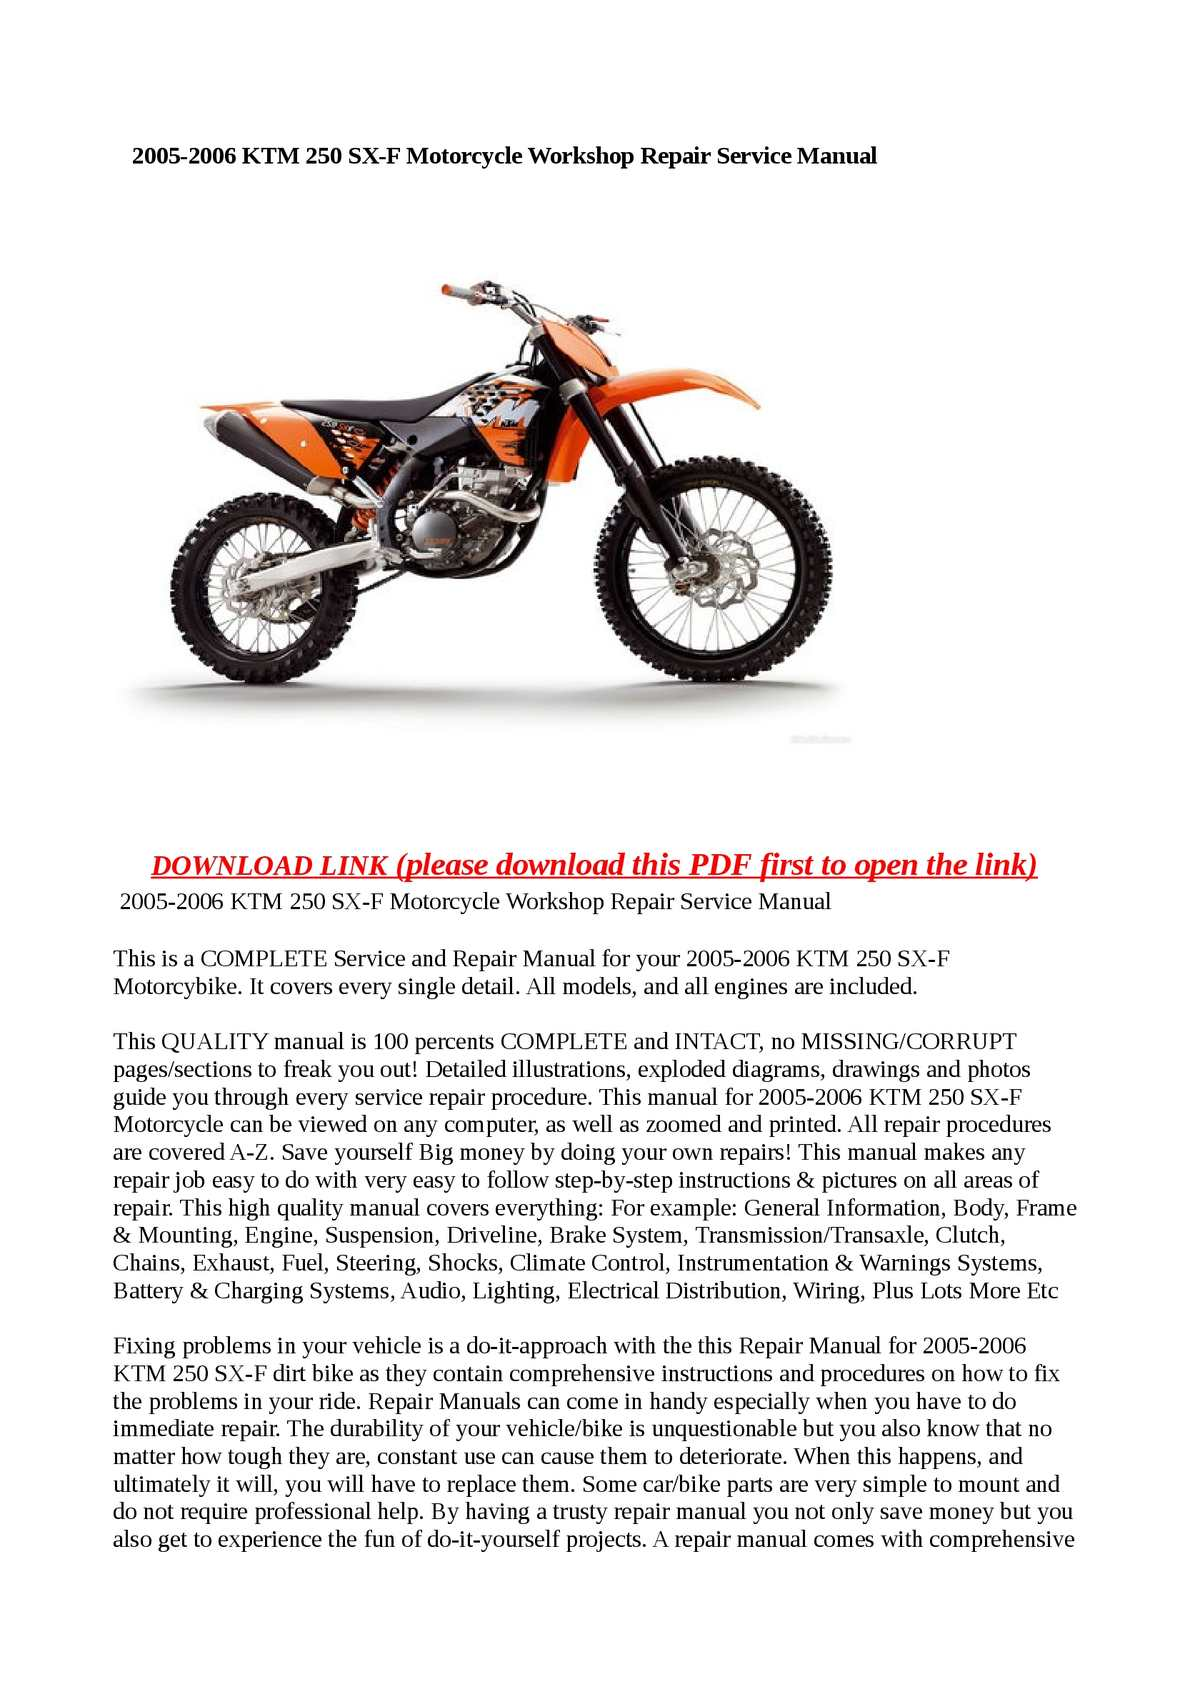 Calaméo - 2005-2006 KTM 250 SX-F Motorcycle Workshop Repair Service Manual